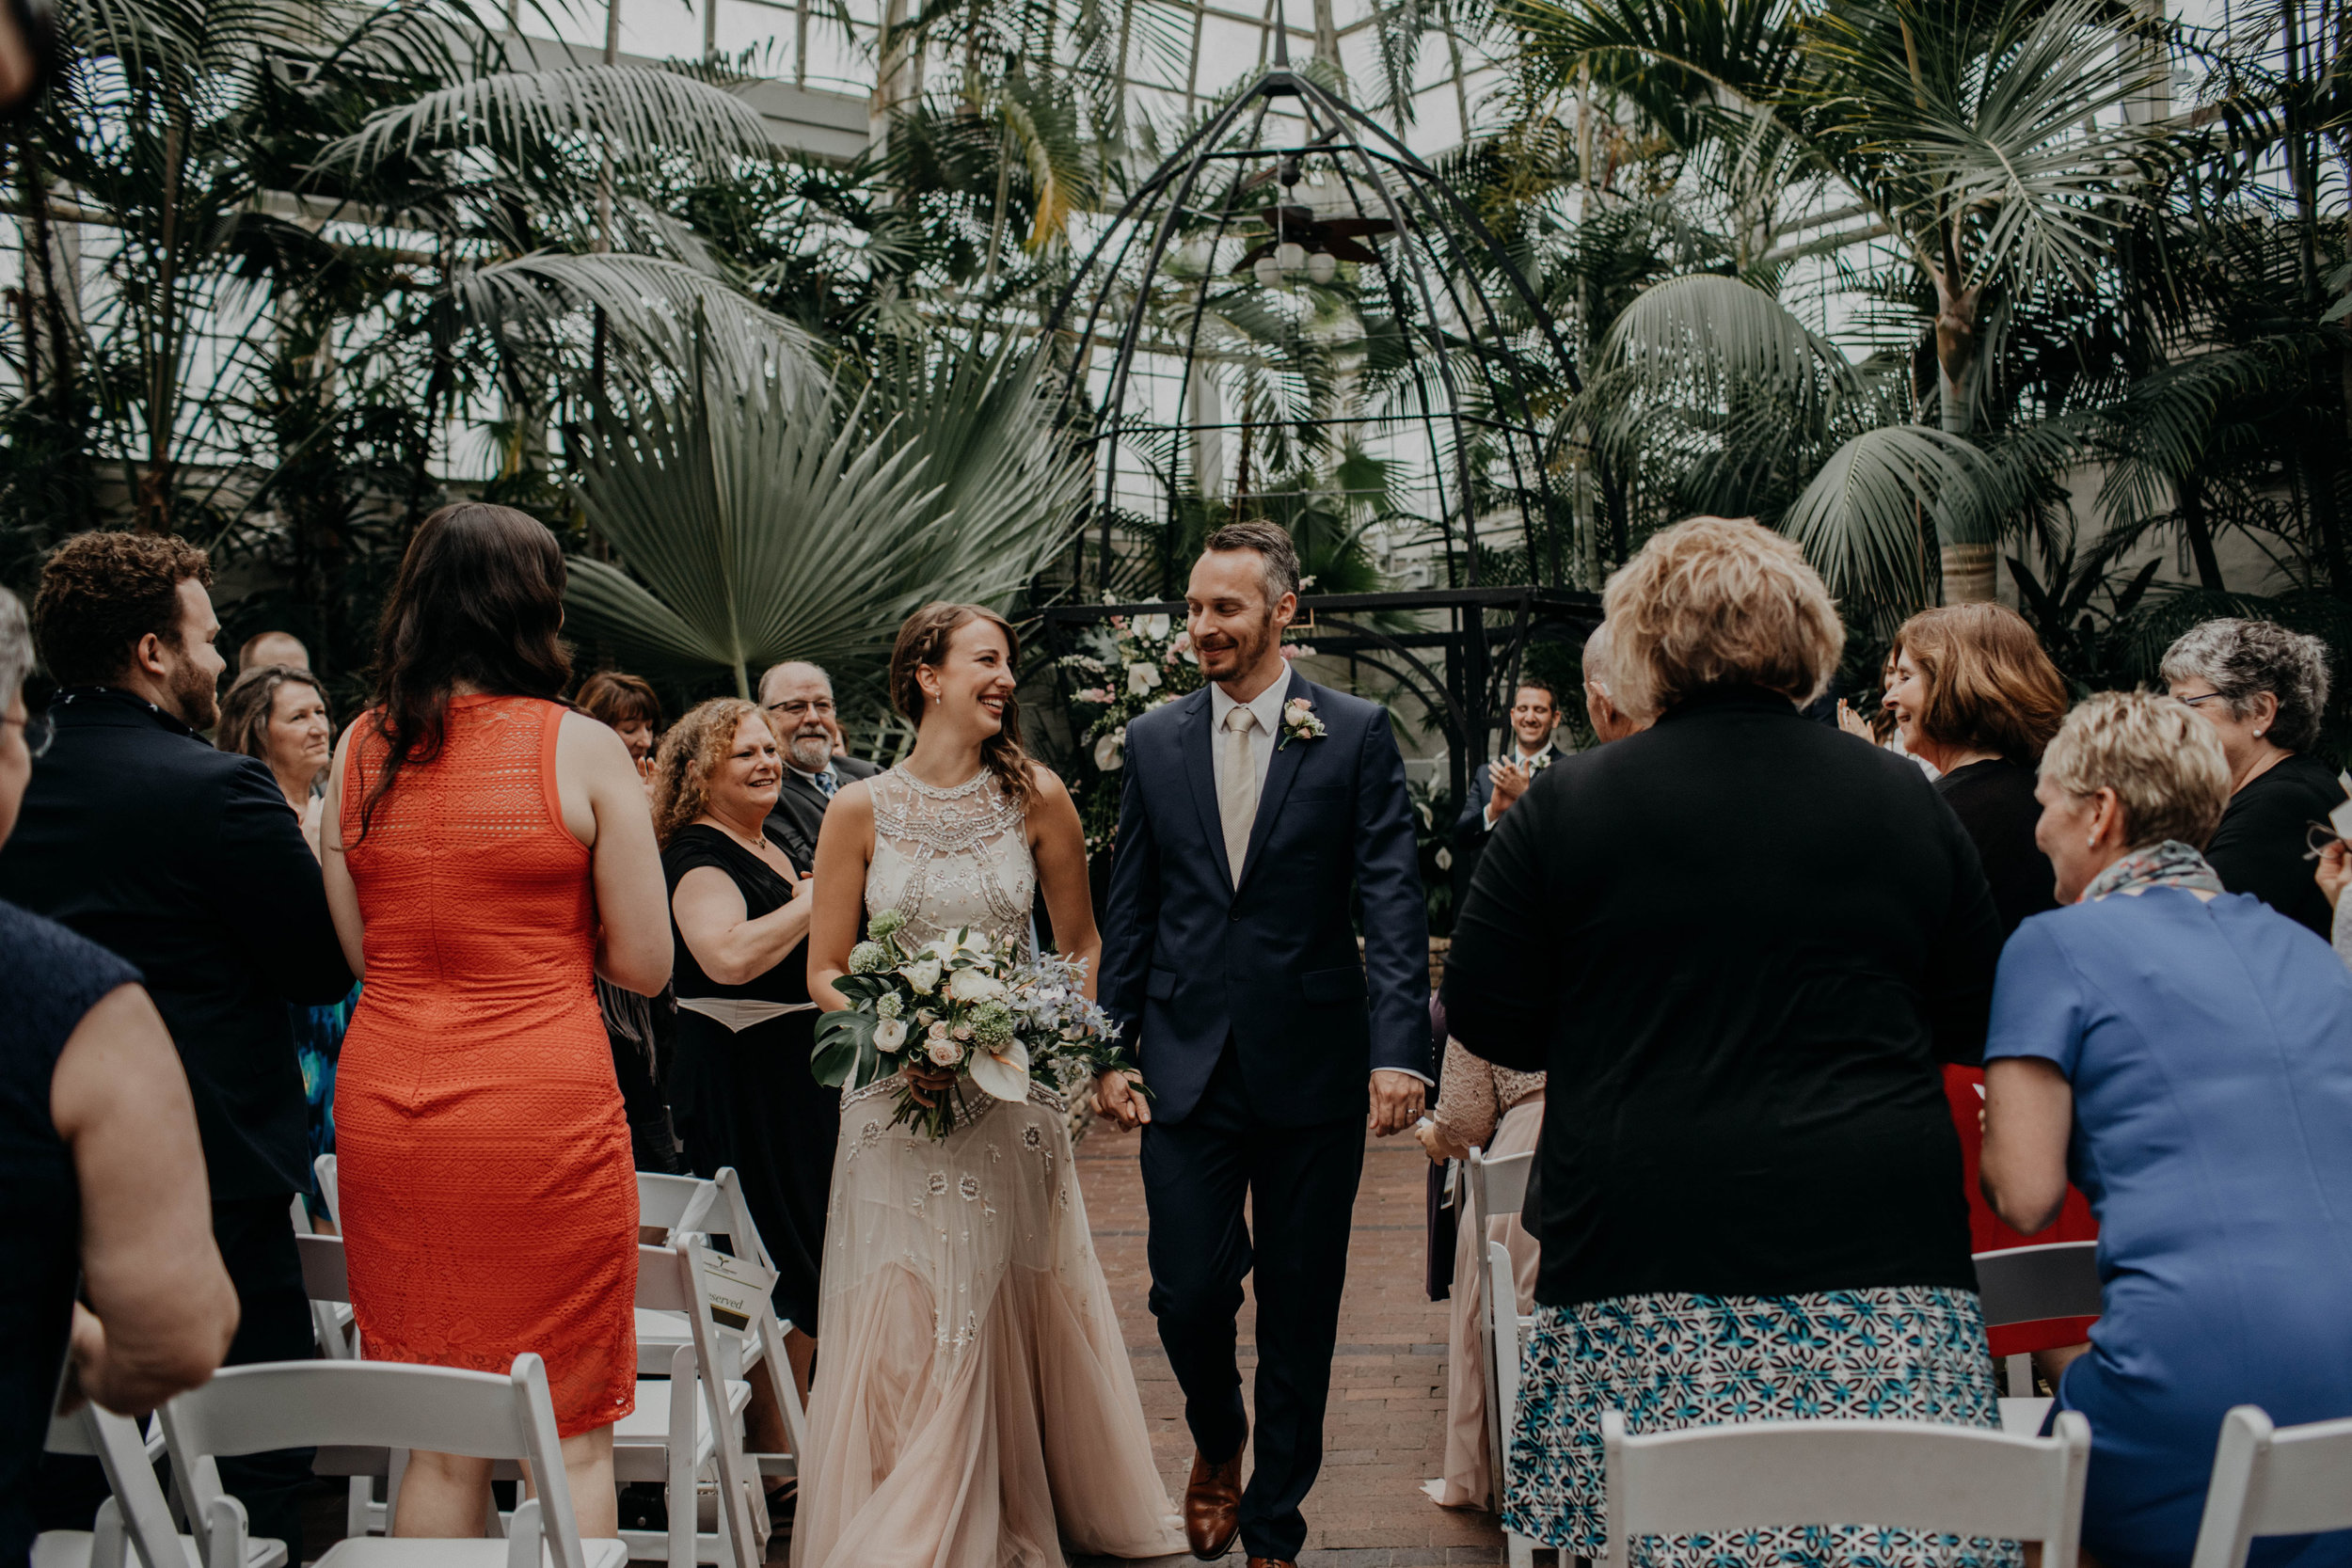 franklin park conservatory wedding columbus ohio wedding photographer grace e jones photography273.jpg